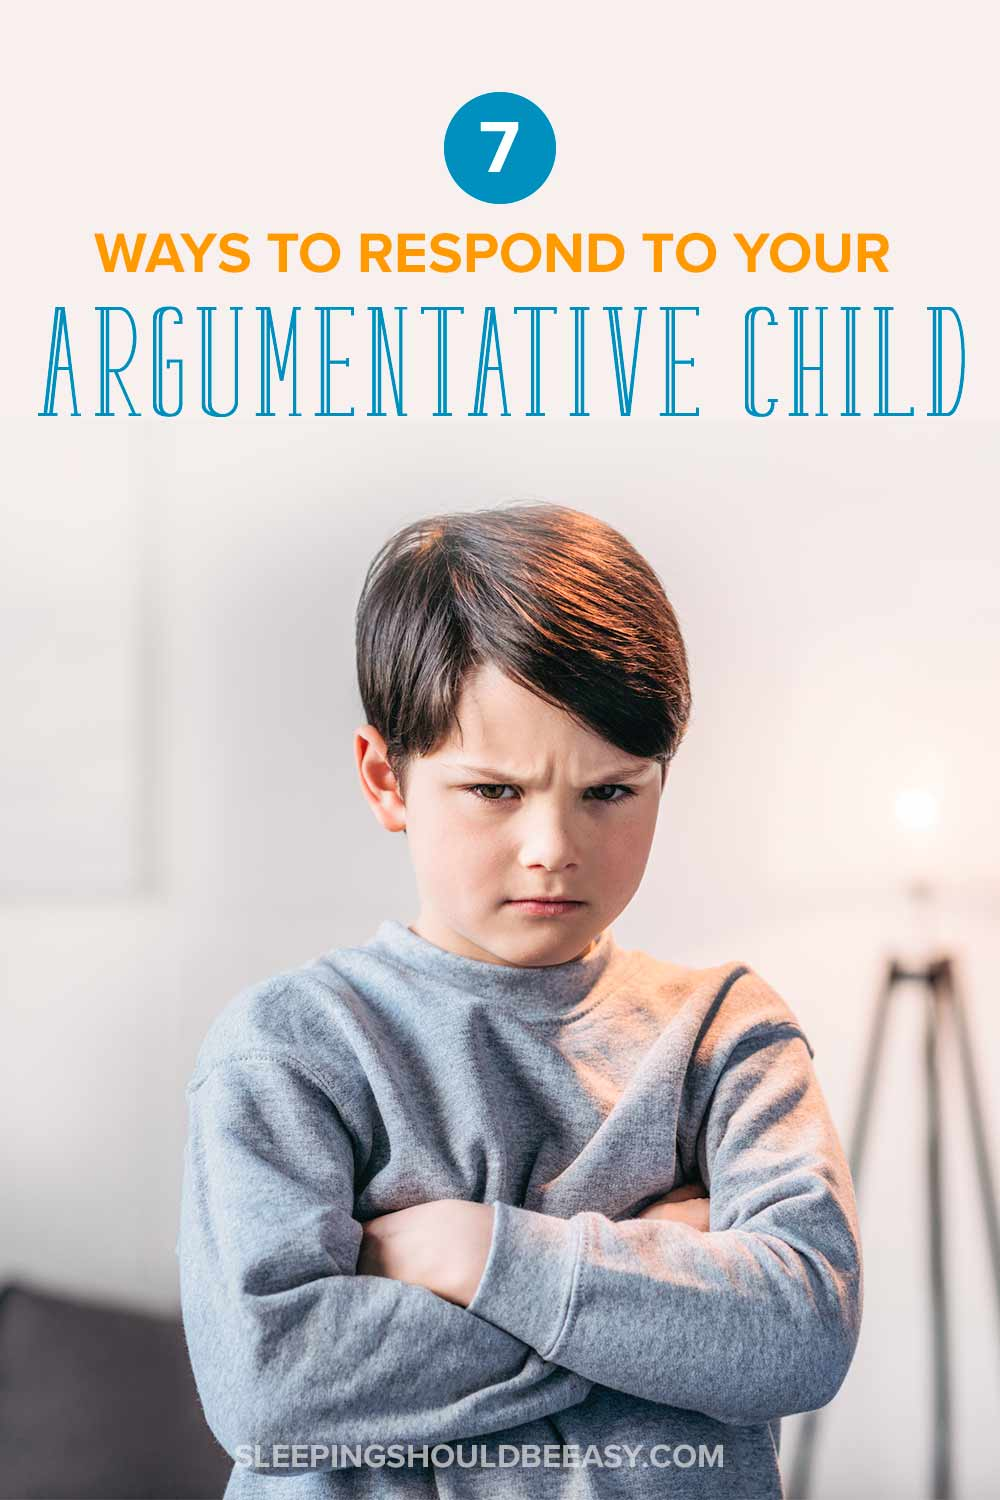 Argumentative child with his arms crossed